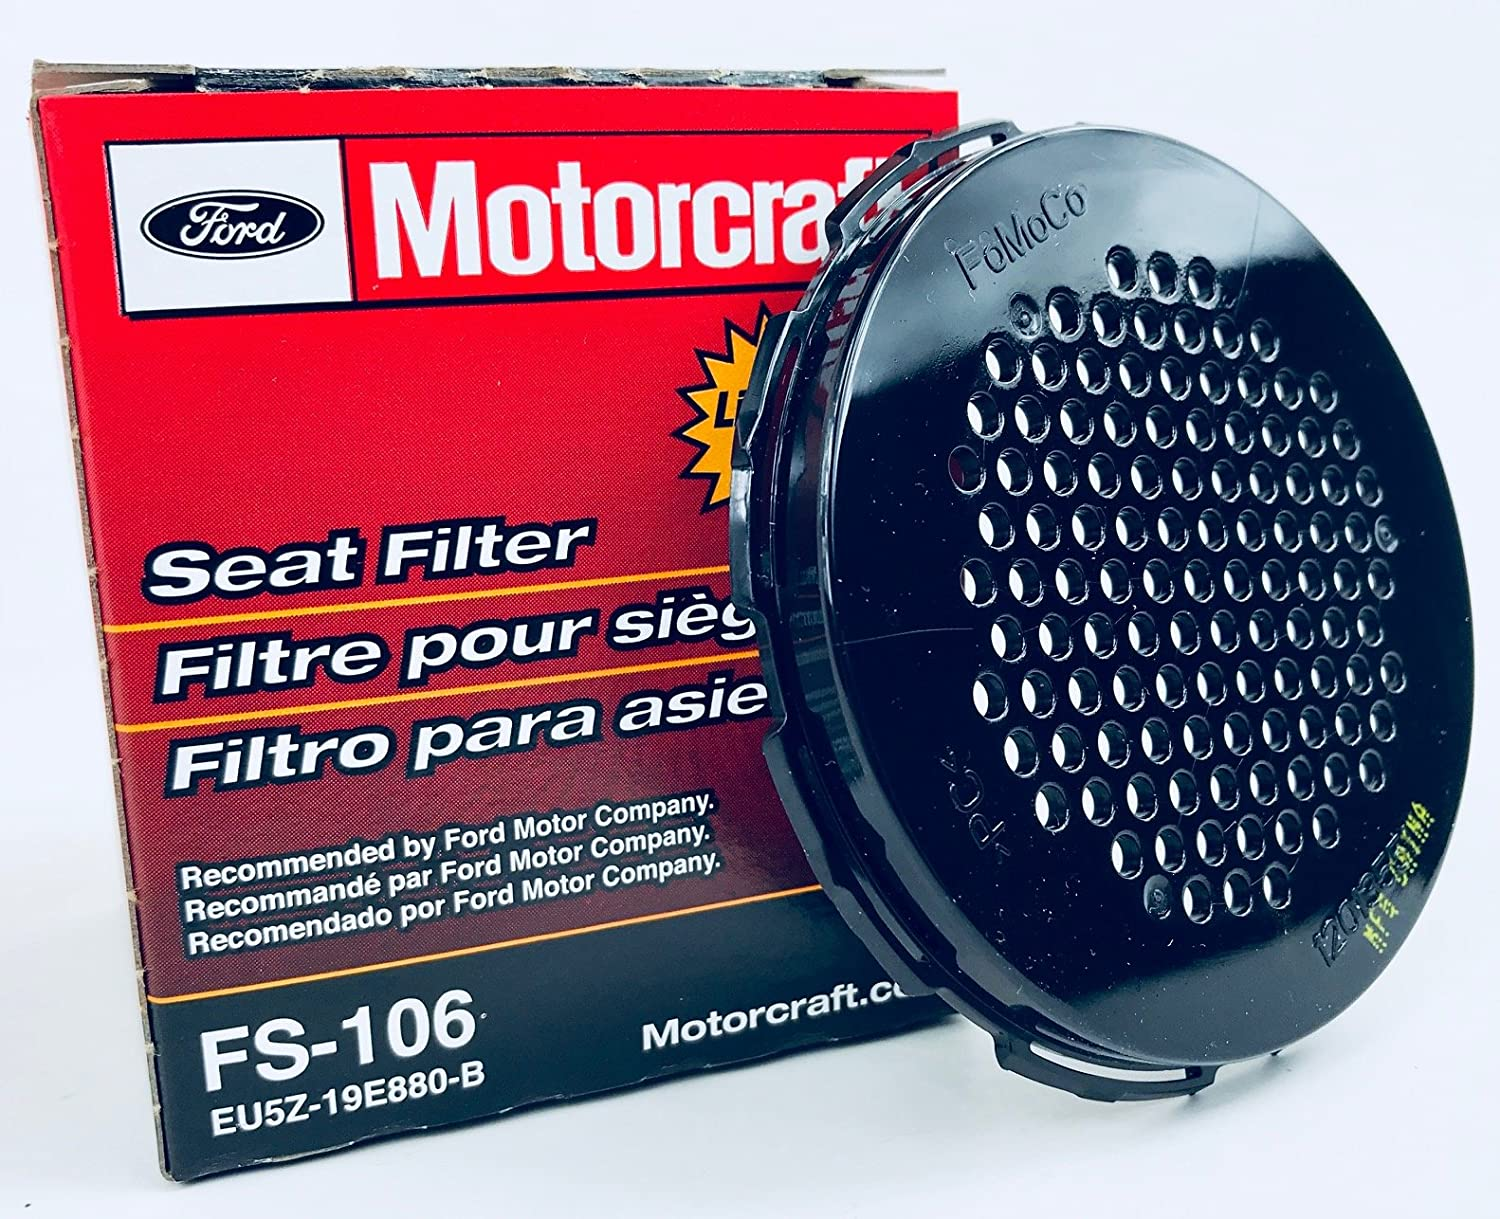 Motorcraft Fs 106 Seat Filter Automotive 2013 Ford Mustang 3 7 Fuel Location